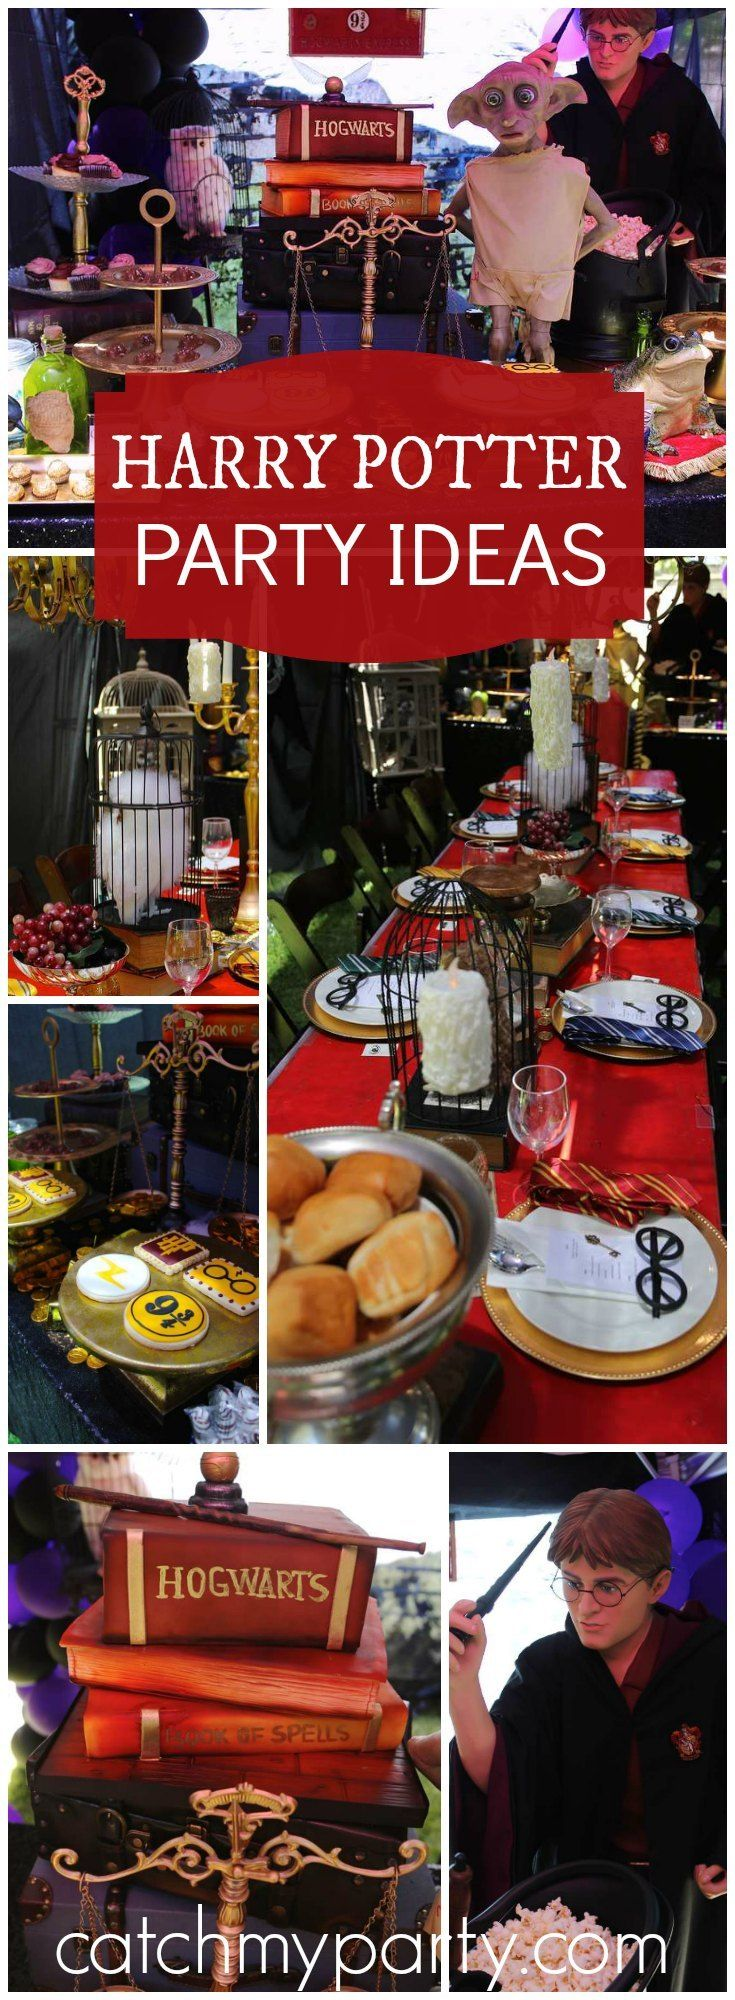 168 best harry potter party ideas images on pinterest harry potter harry potter birthday harry potter forumfinder Images